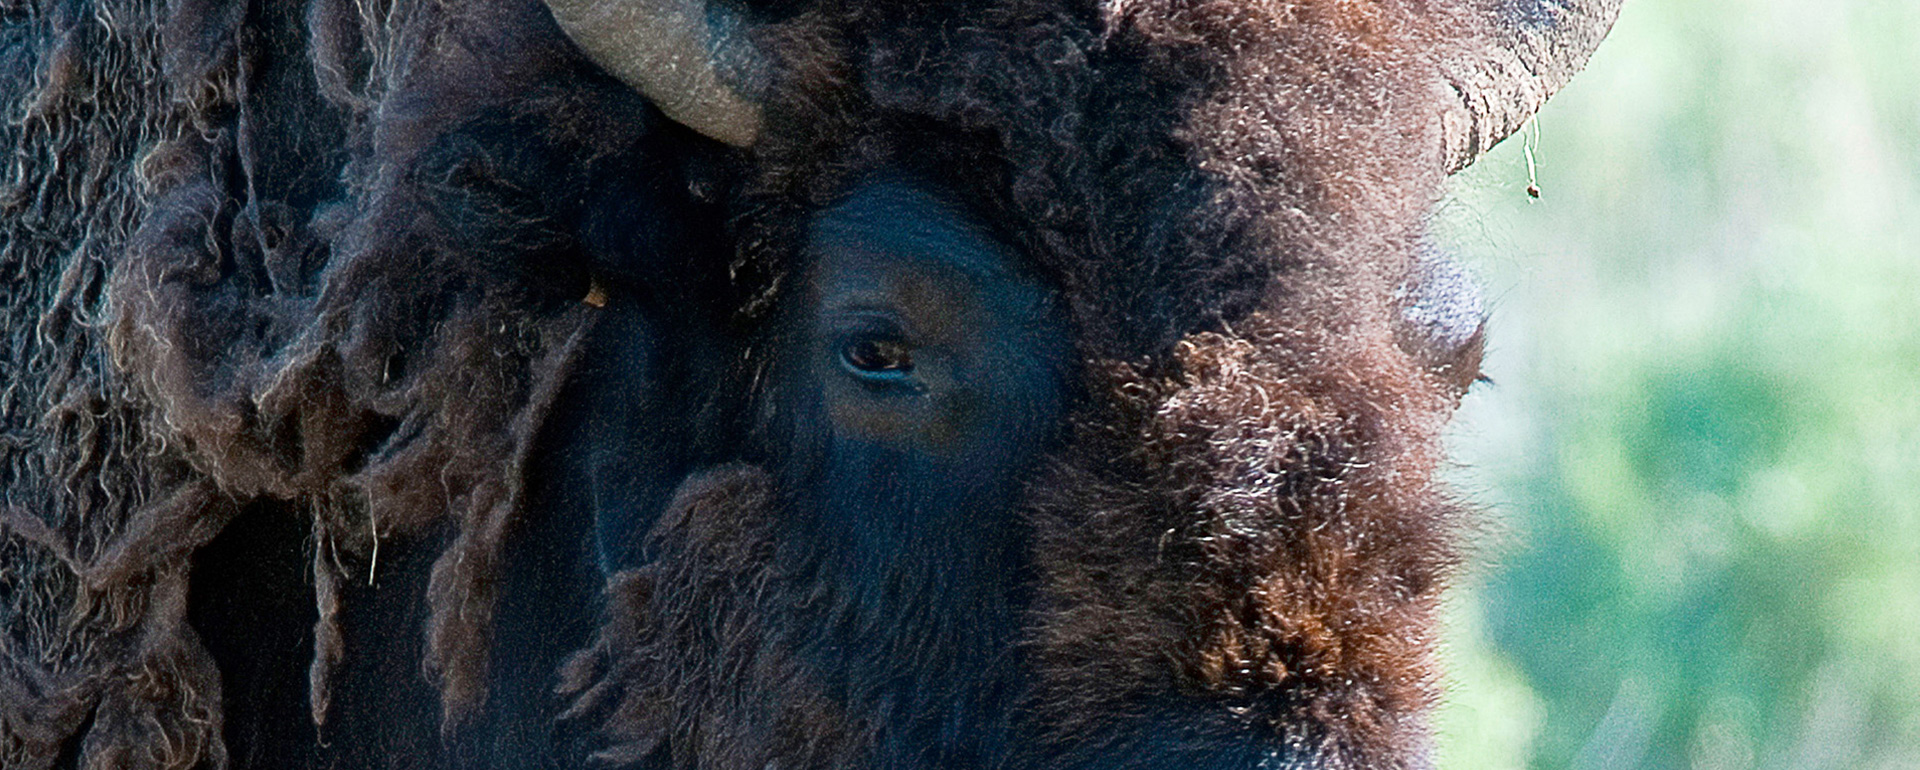 Yellowstone Park, Bison 8